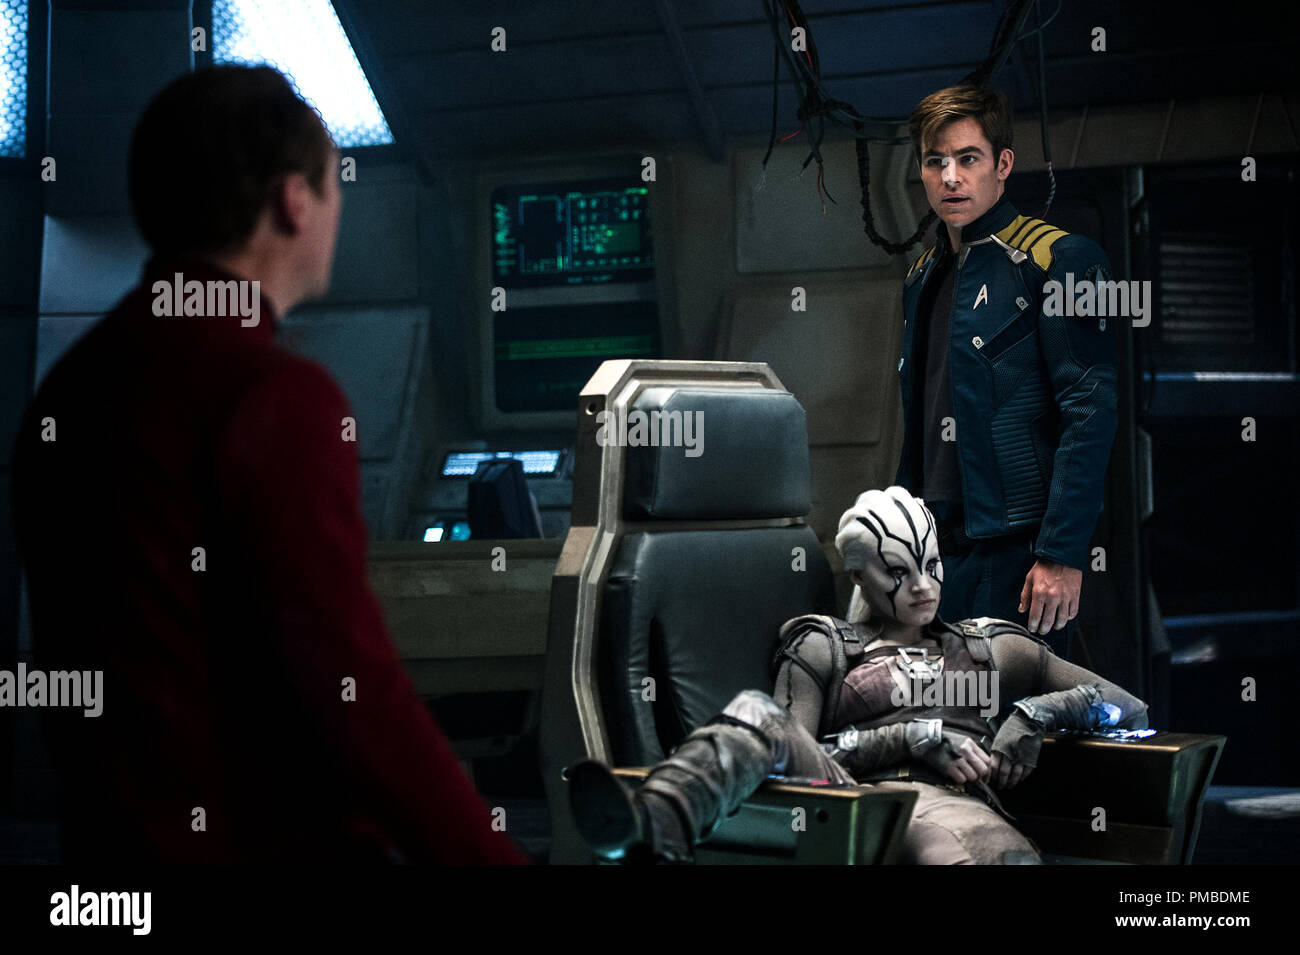 Left to right: Simon Pegg plays Scotty, Sofia Boutella plays Jaylah and Chris Pine plays Kirk in Star Trek Beyond from Paramount Pictures, Skydance, Bad Robot, Sneaky Shark and Perfect Storm Entertainment - Stock Image